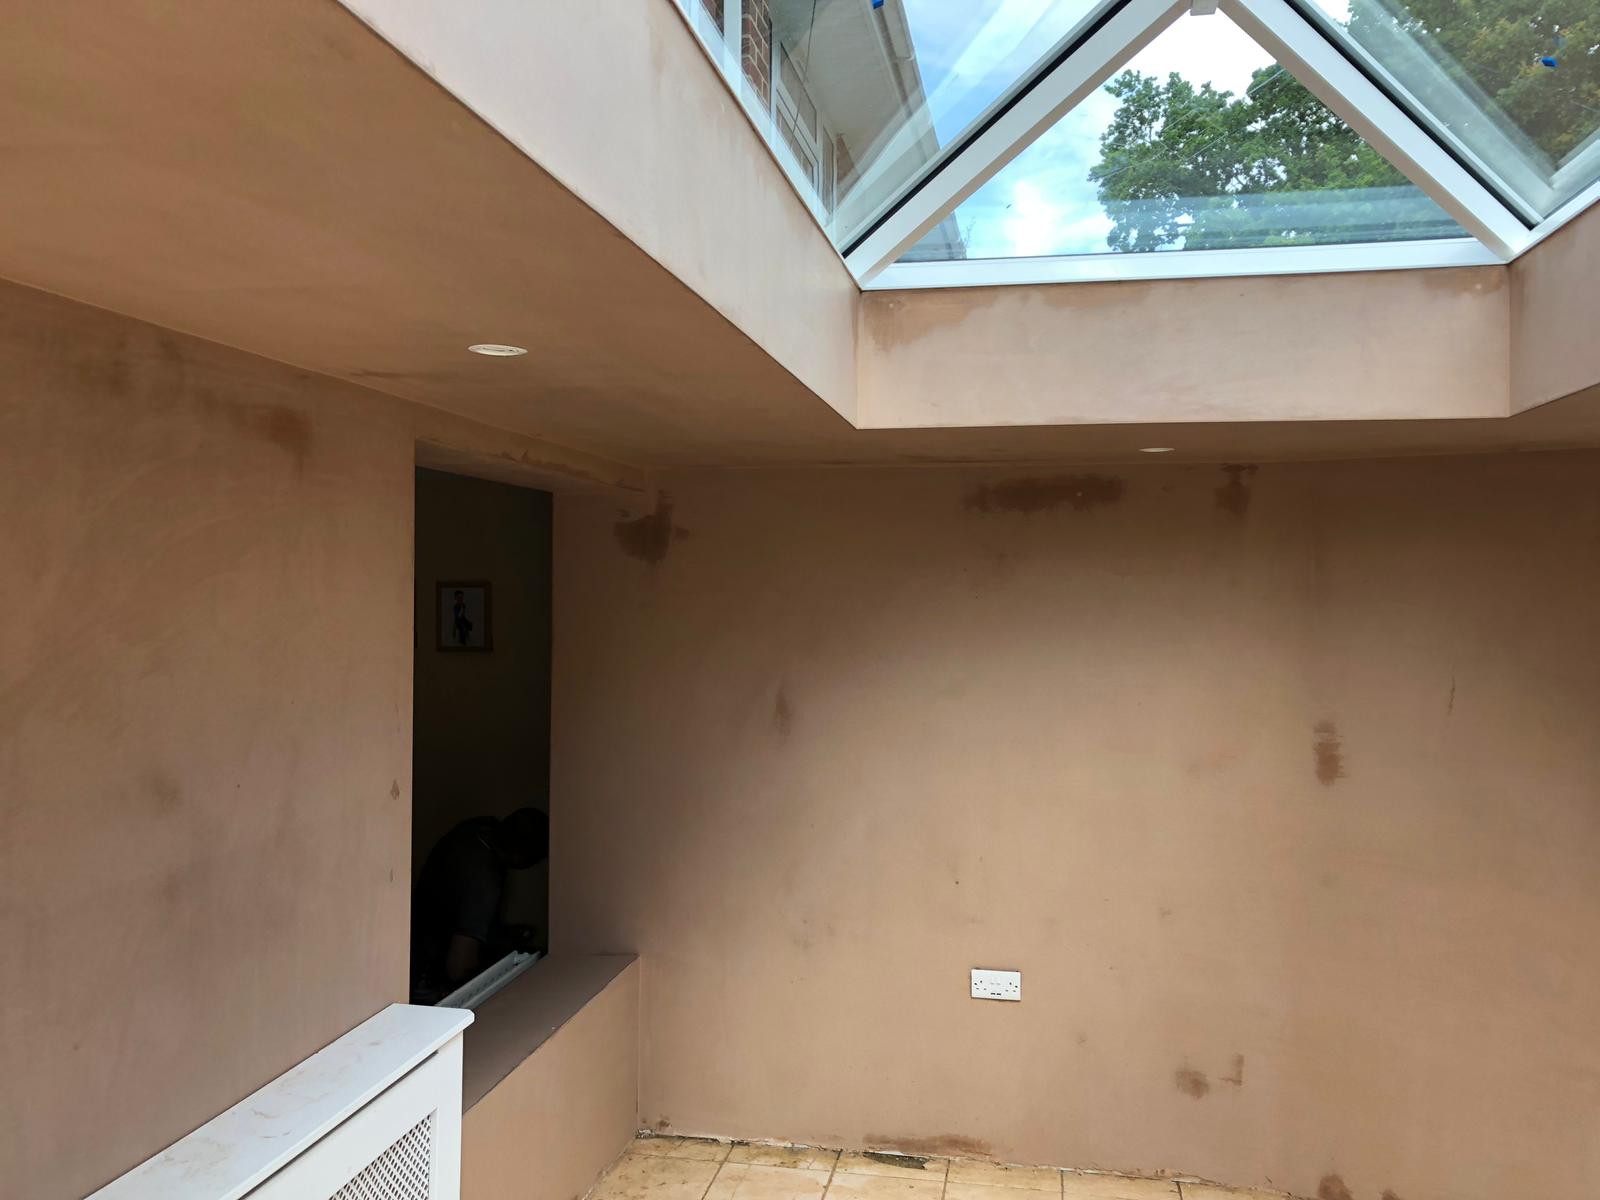 INSURANCE ESTIMATE, FLOODS, BROKEN CONSERVATORY, DAMAGED CONSERVATORY ROOF, LEAKS, ROOF LEAKS, FLOODS, DAMP ISSUES, COLLAPSED CONSERVATORY QUOTE, ROOF REPAIRS, BUILDER COMPLETION WORKS, FINISHING JOBS LEFT OVER, INSURANCE QUOTE